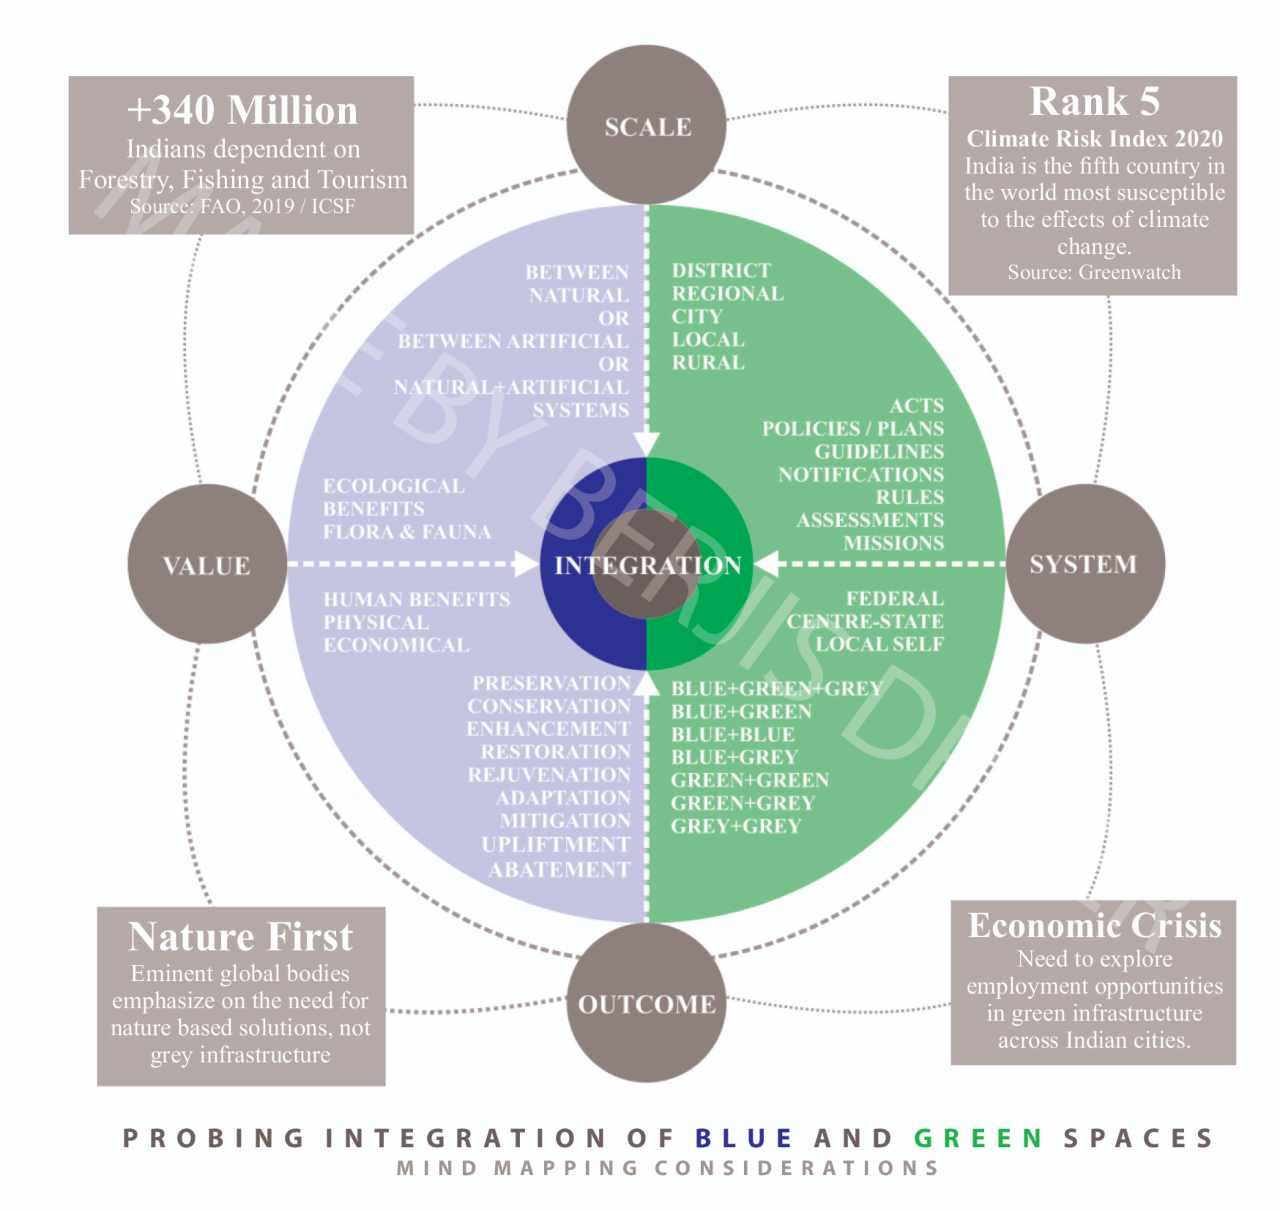 Probing integration of blue and green spaces – Mind mapping considerations. Image: Author provided